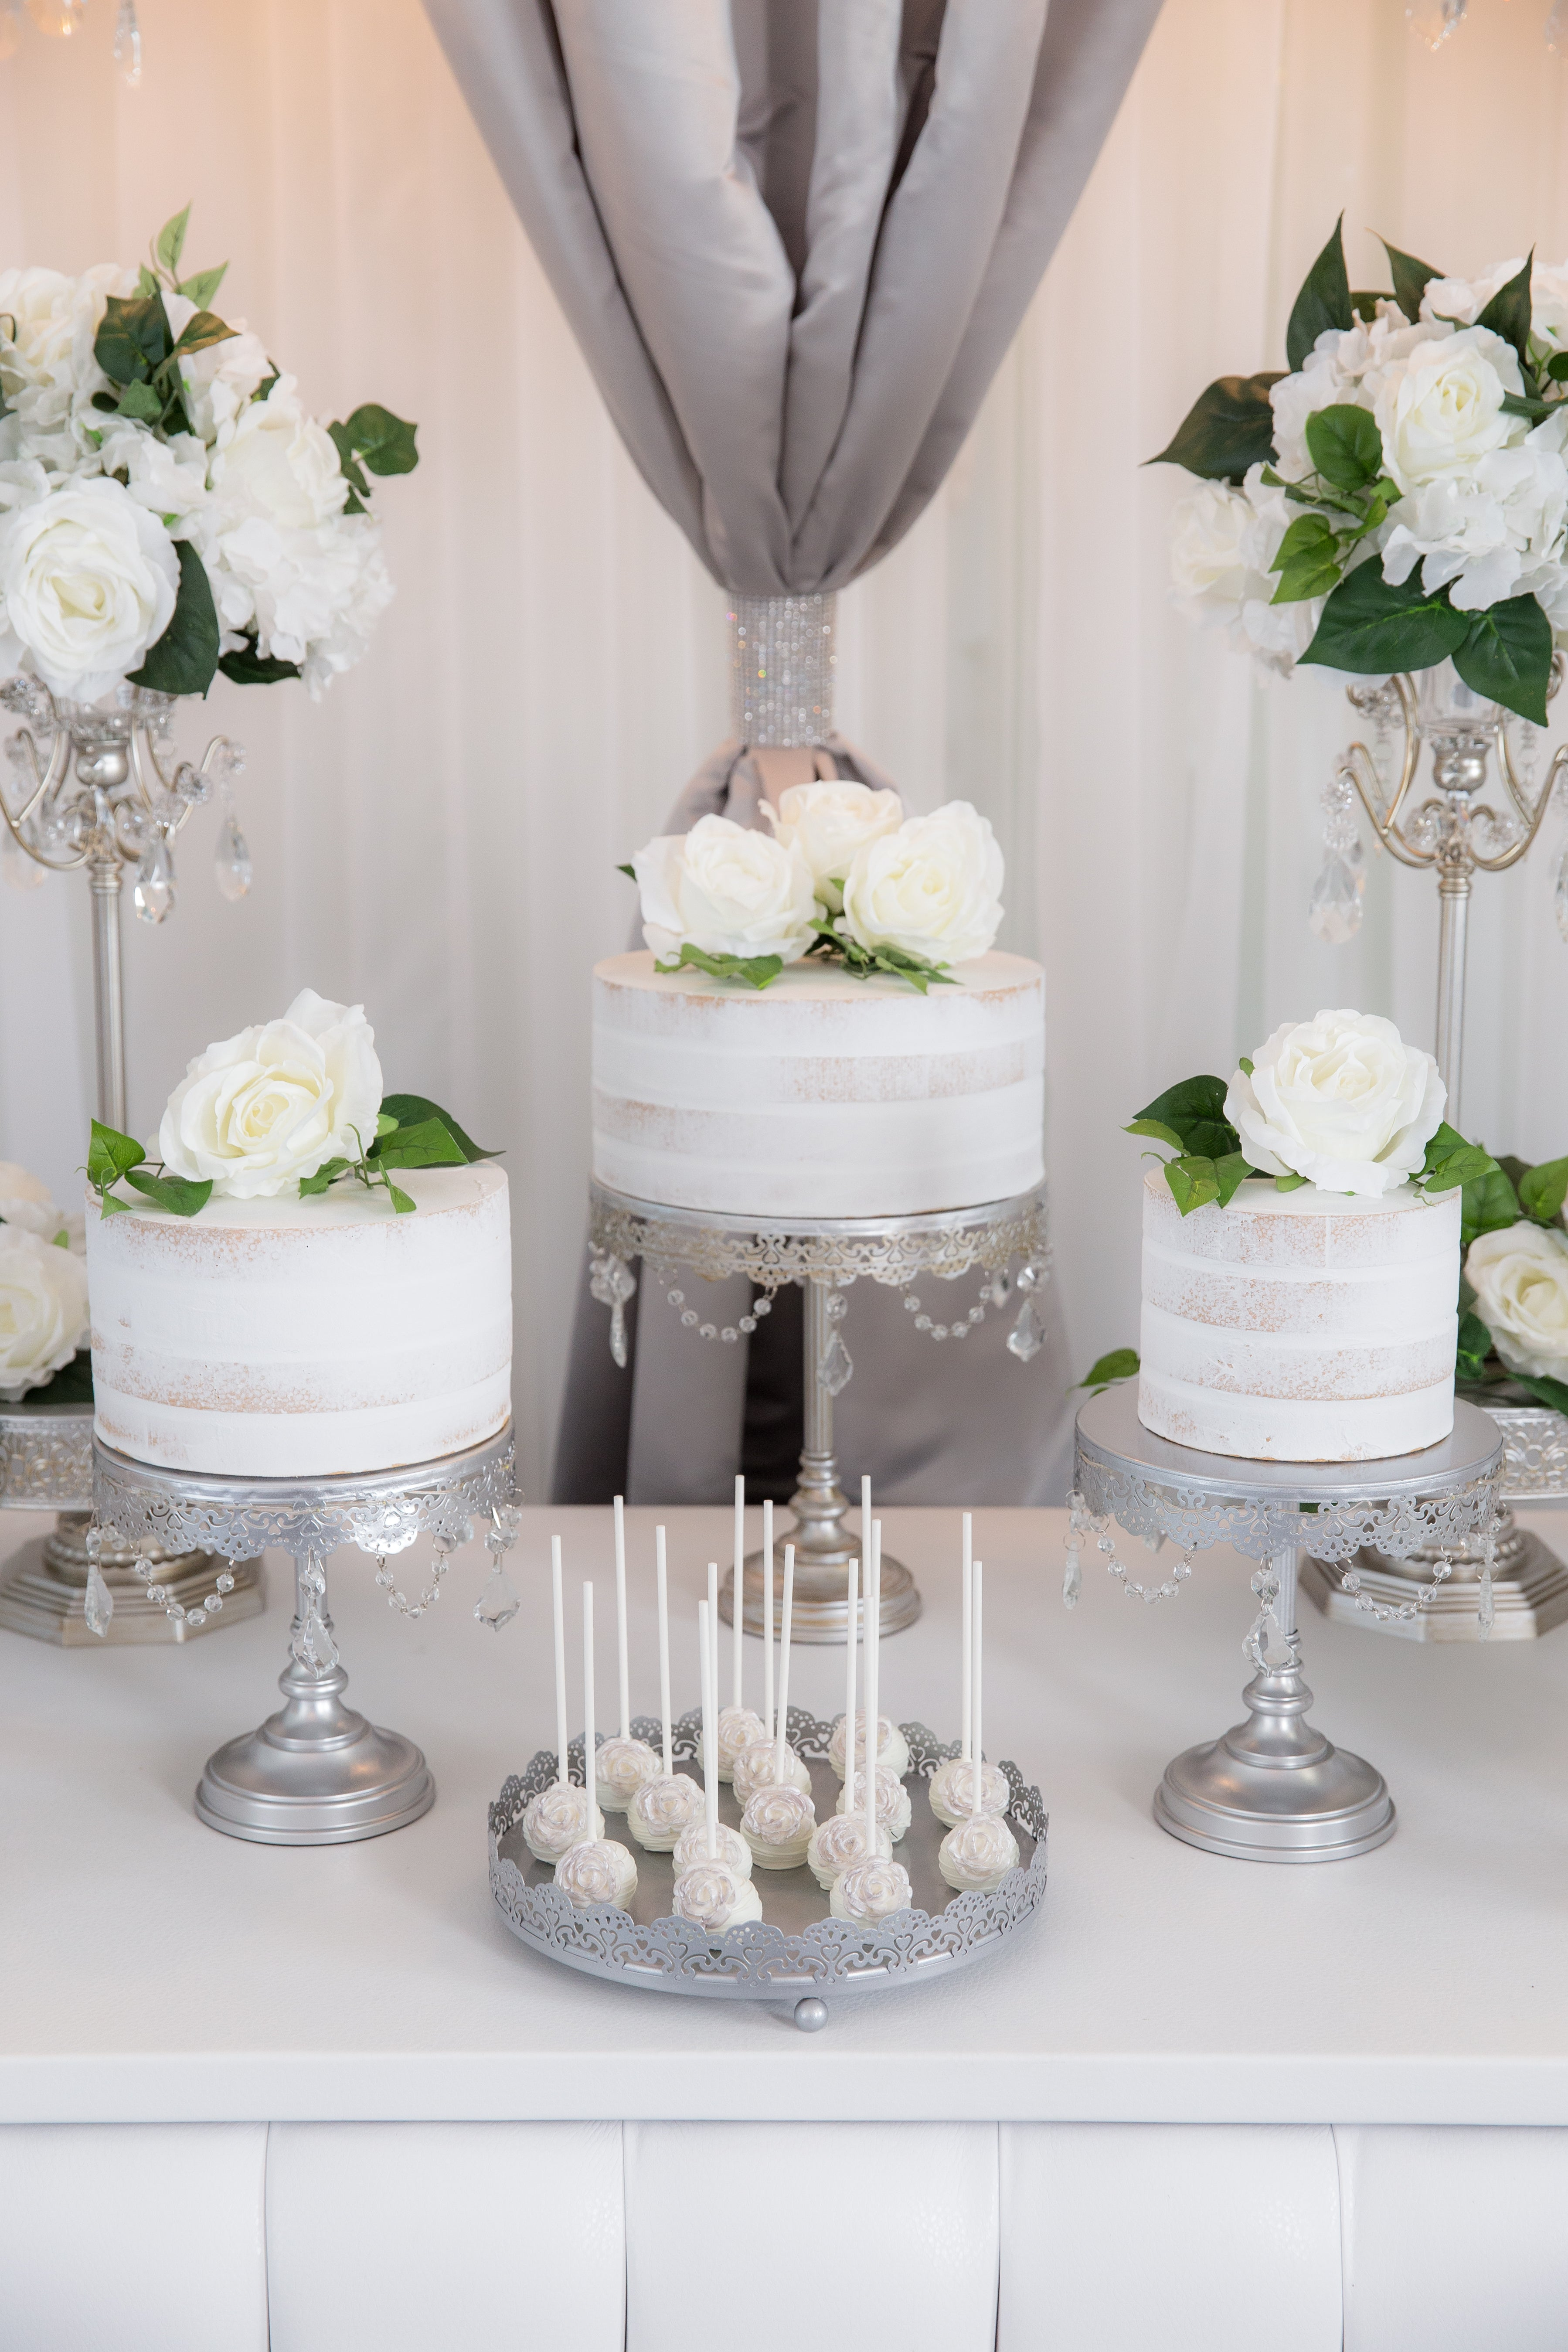 Garden Theme wedding naked cake with cake pops on a dessert table with cake stands by Amalfi Decor